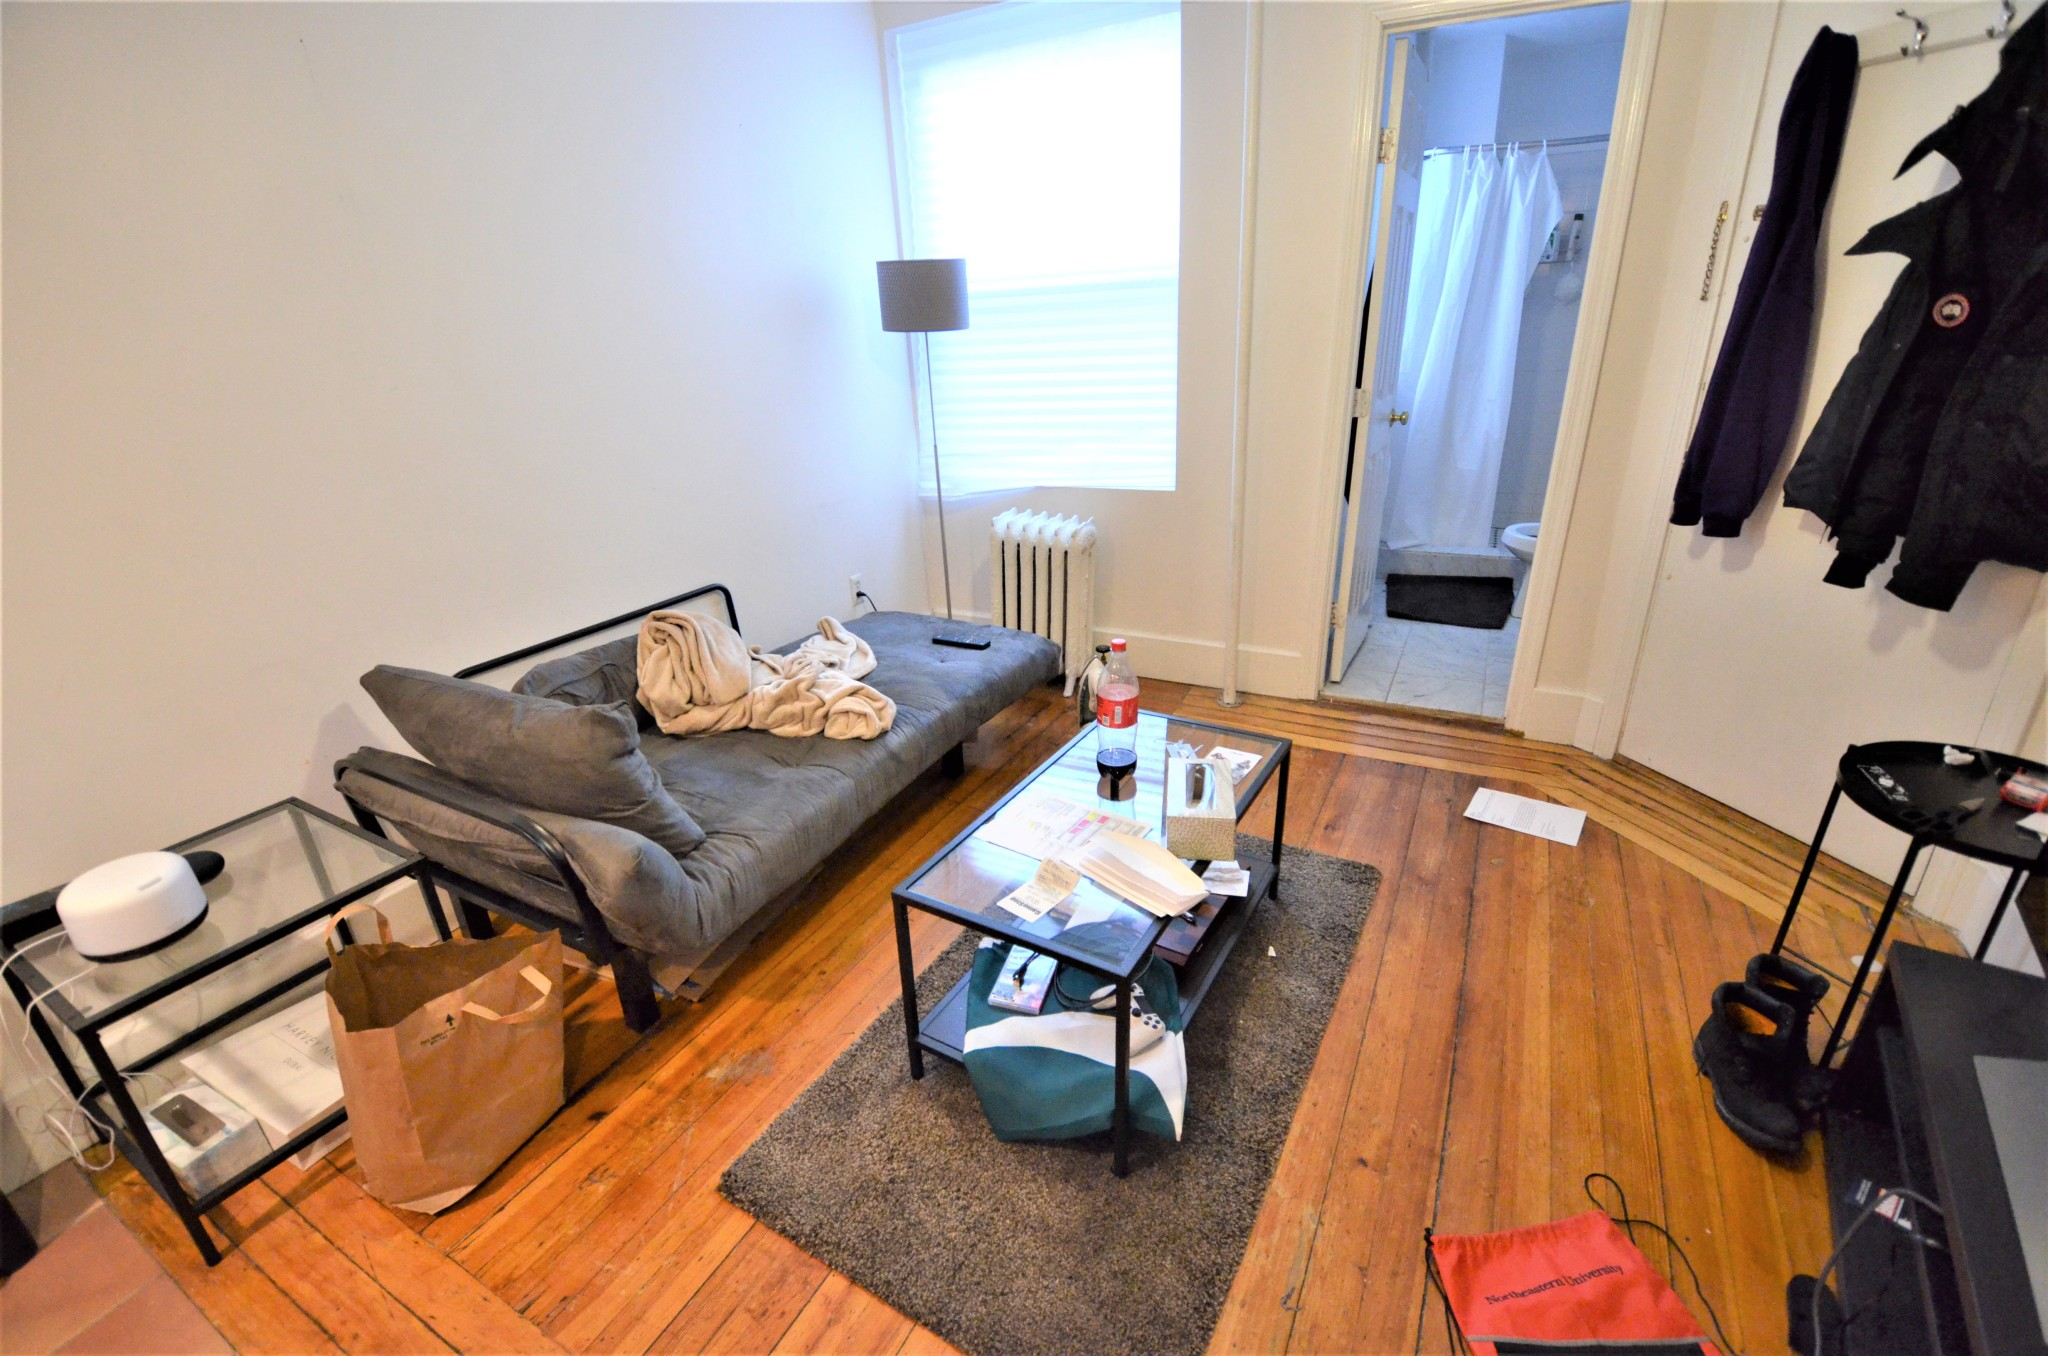 1 Bed, 1 Bath apartment in Boston for $1,850